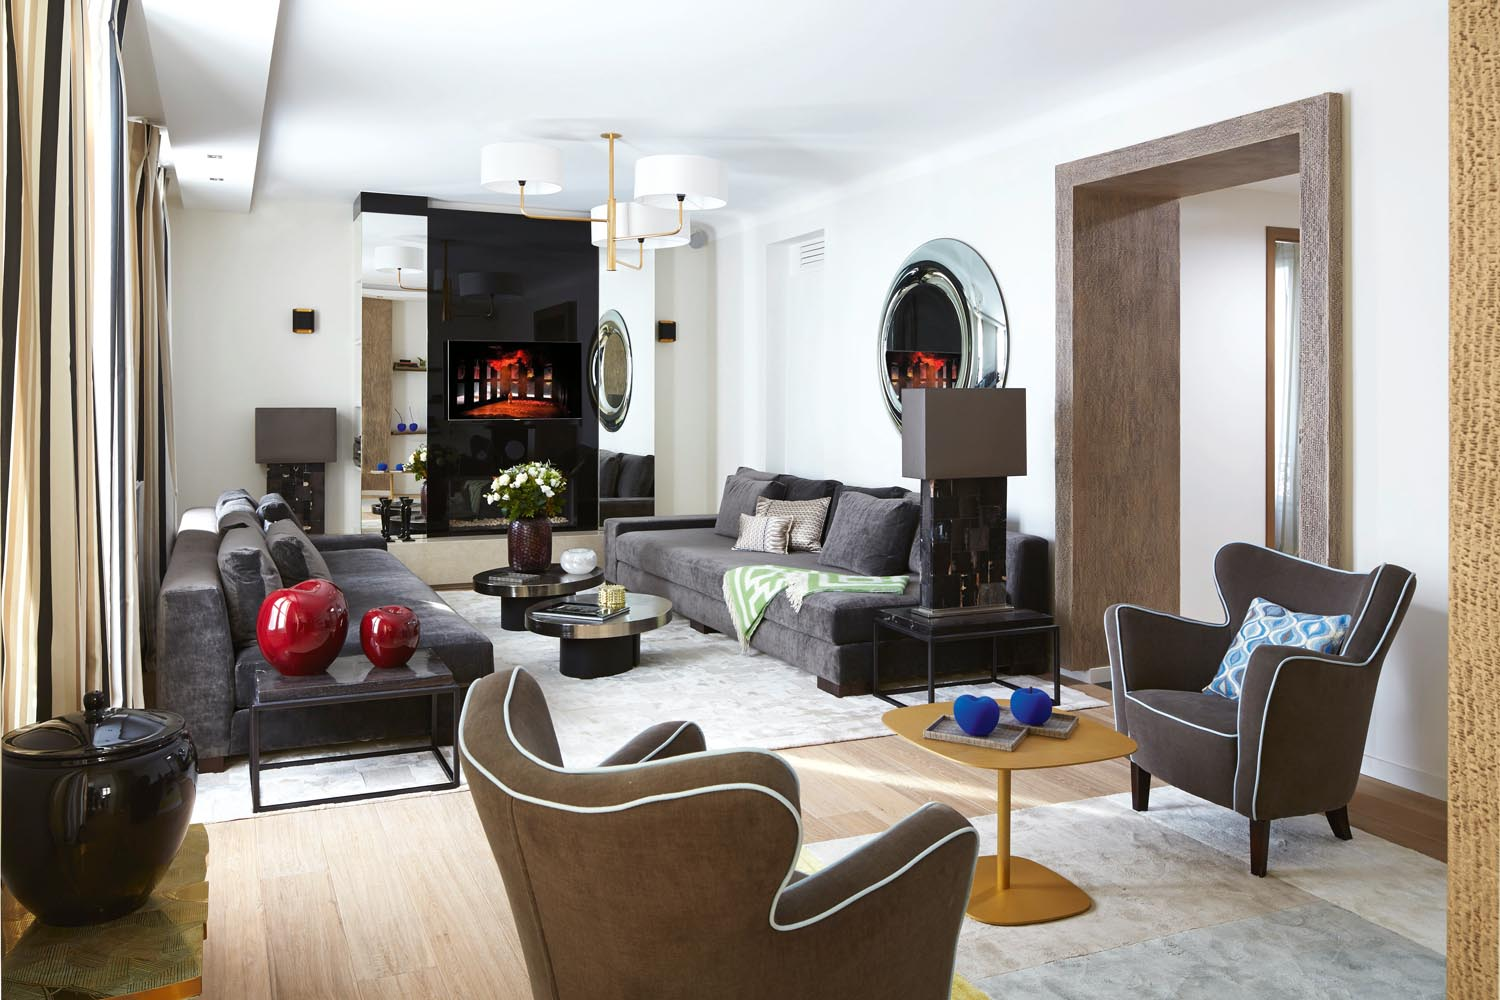 Comfort is king in this living room, with greys and browns adding to the laidback atmosphere